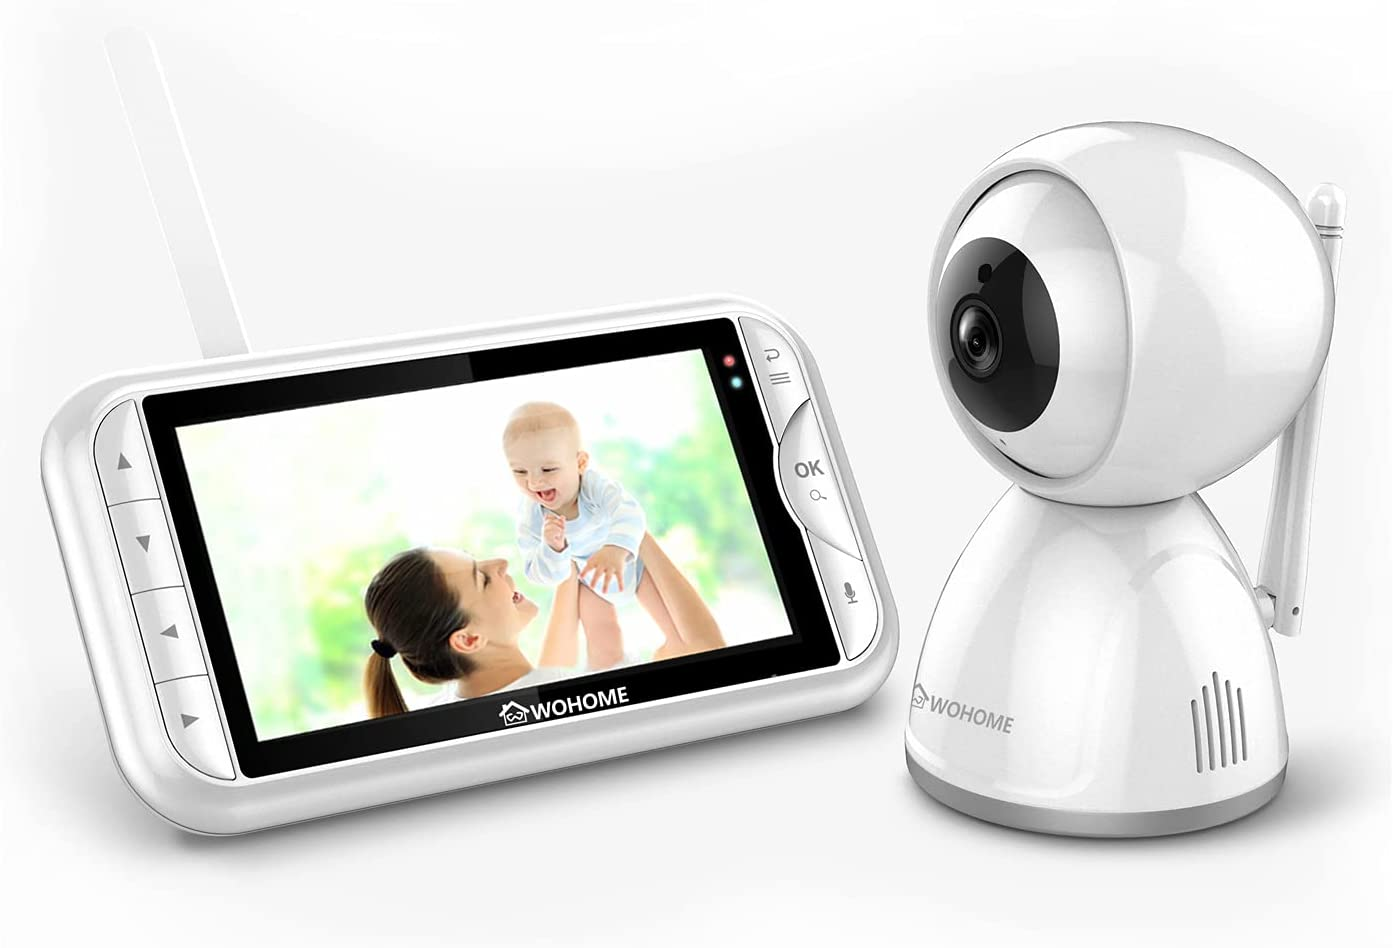 Wohome Video Baby Monitor with Camera and Audio, 5-inch 720p Display, HD Night Vision, Room Temperature,2X Digital Zoom,2-Way Talk,900ft Range